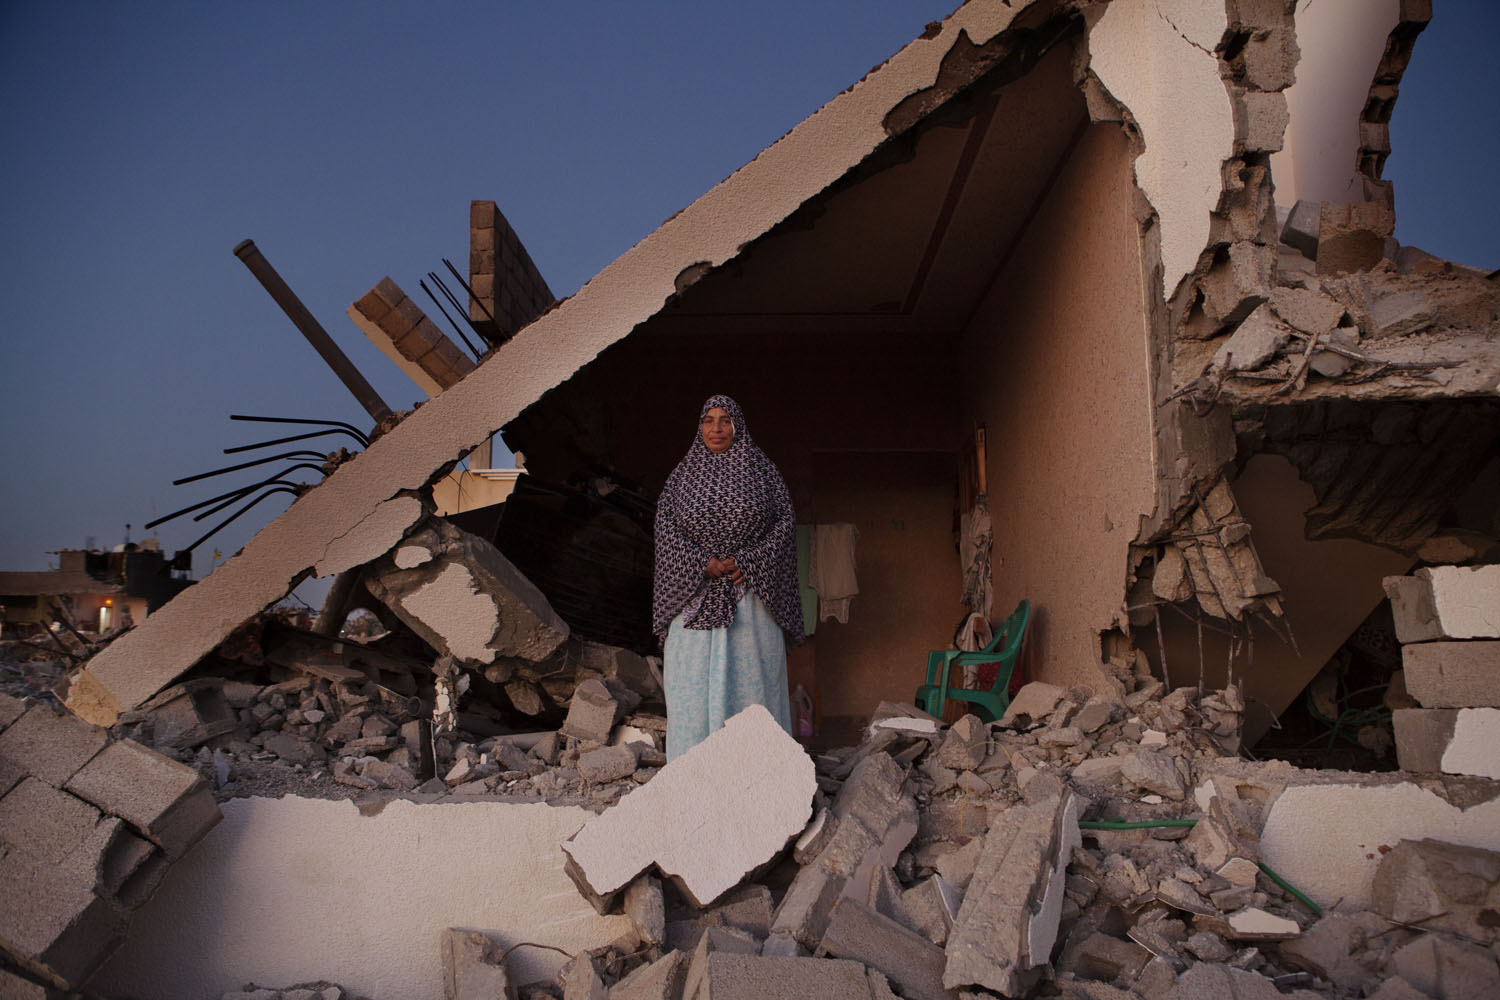 MSNBC: In Gaza, Life Persists Amid the RubbleSobheya Hamid Abu Mutlag, 59, poses at her home in Khan Yunis destroyed during the summer conflict between Israel and Hamas. Despite the serious damage, she cannot leave, since there is no place else for her to move, or it is too expensive to rent after the war. Khoza'a in Khan Yunis, Gaza. Oct. 5, 2014.